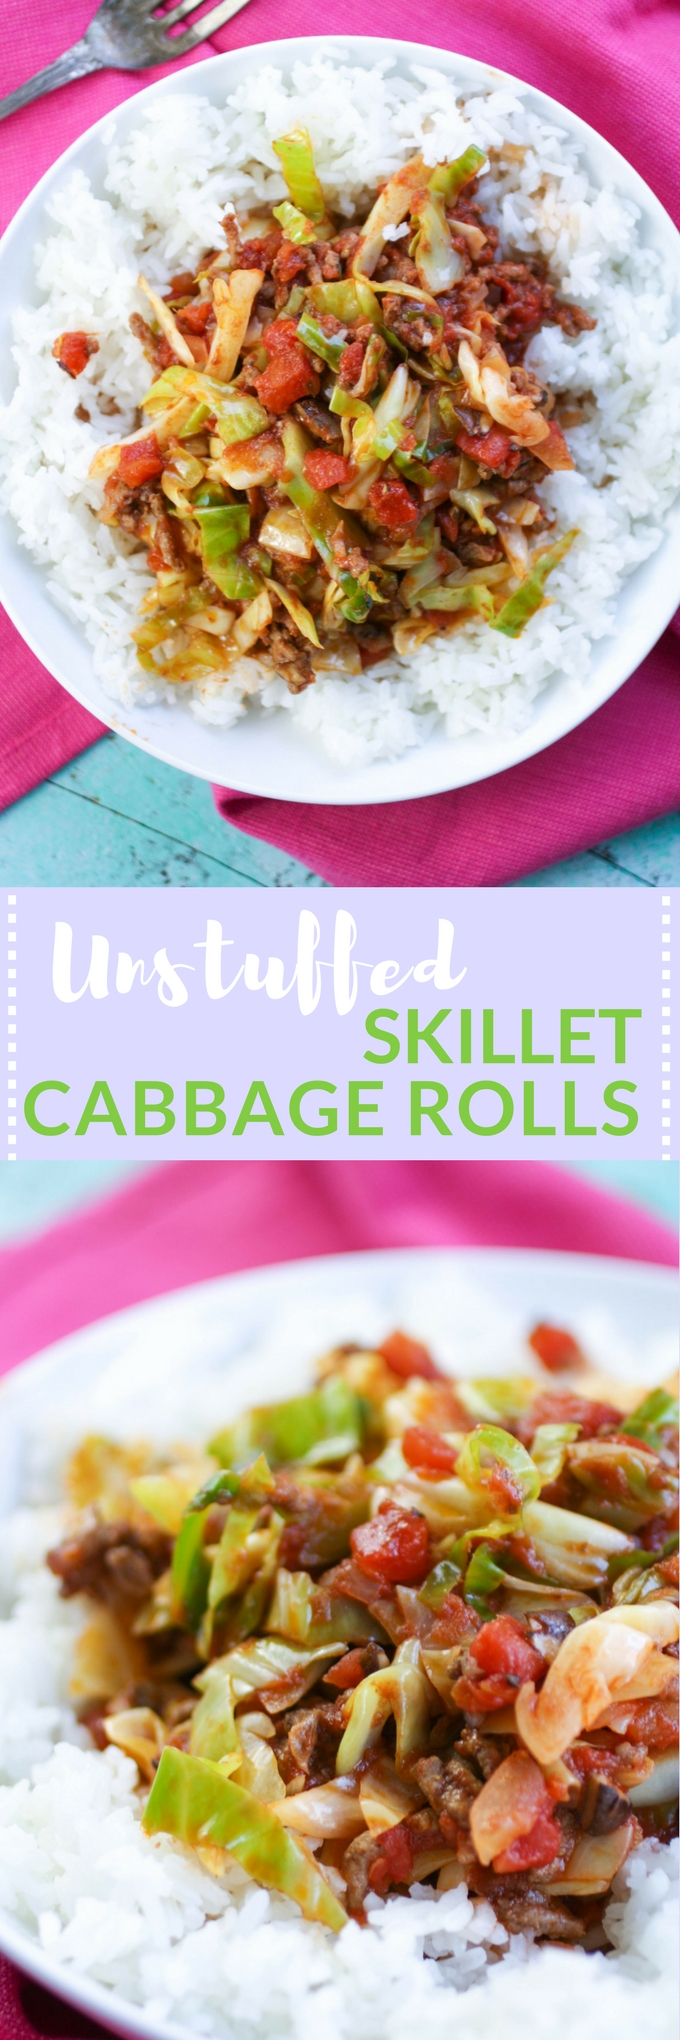 Unstuffed Skillet Cabbage Rolls is a dish you'll enjoy during the cold weather months. Unstuffed Skillet Cabbage Rolls is so easy to make, too! You'll love this comfort dish.